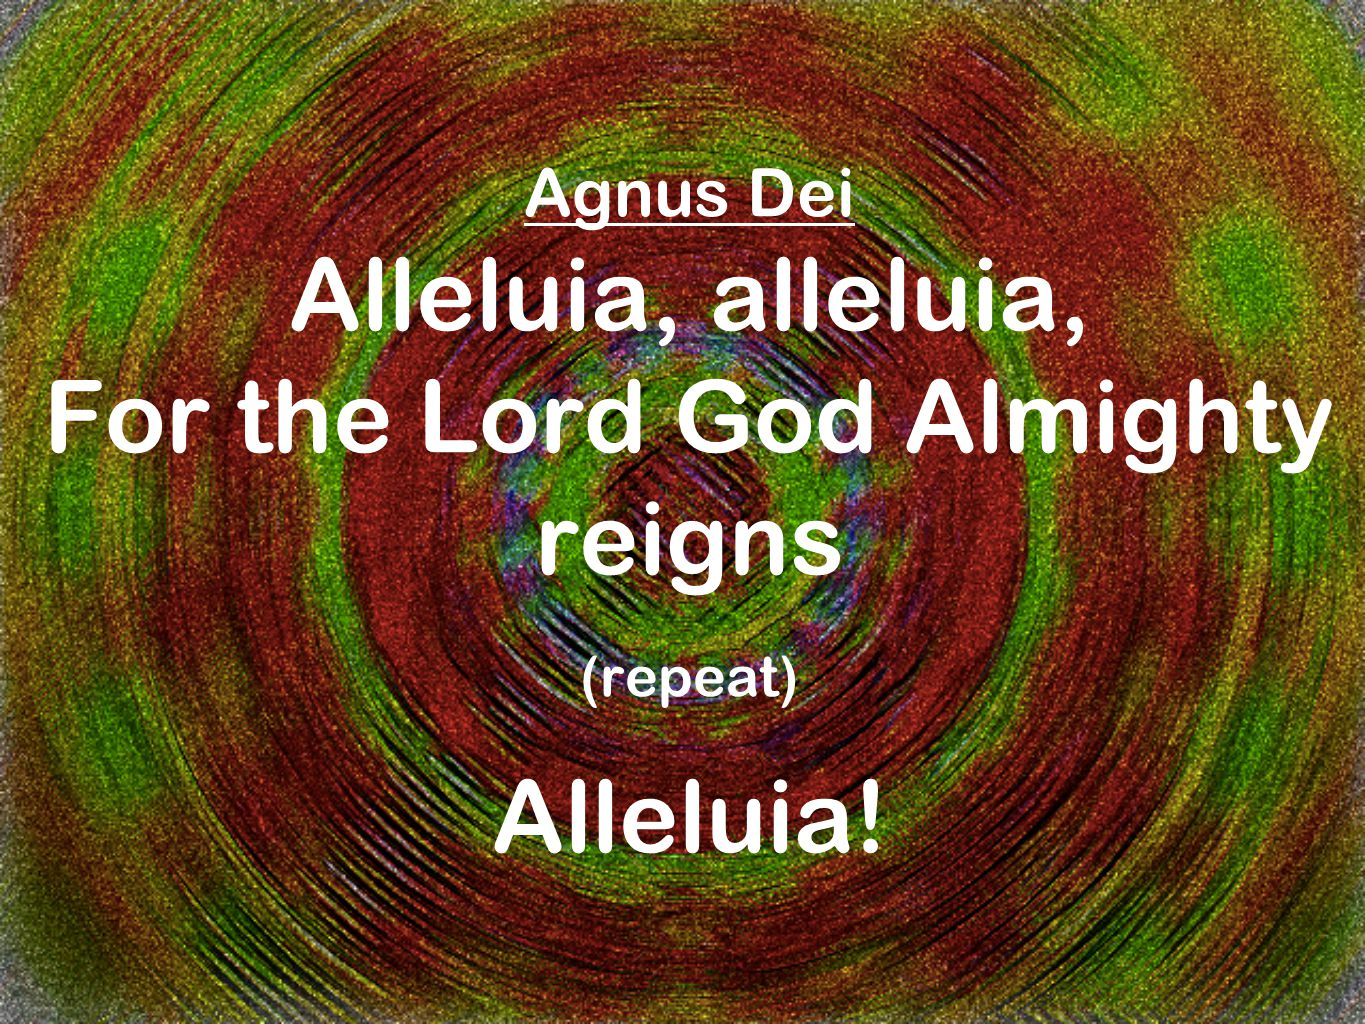 Agnus Dei Alleluia, alleluia, For the Lord God Almighty reigns (repeat) Alleluia!